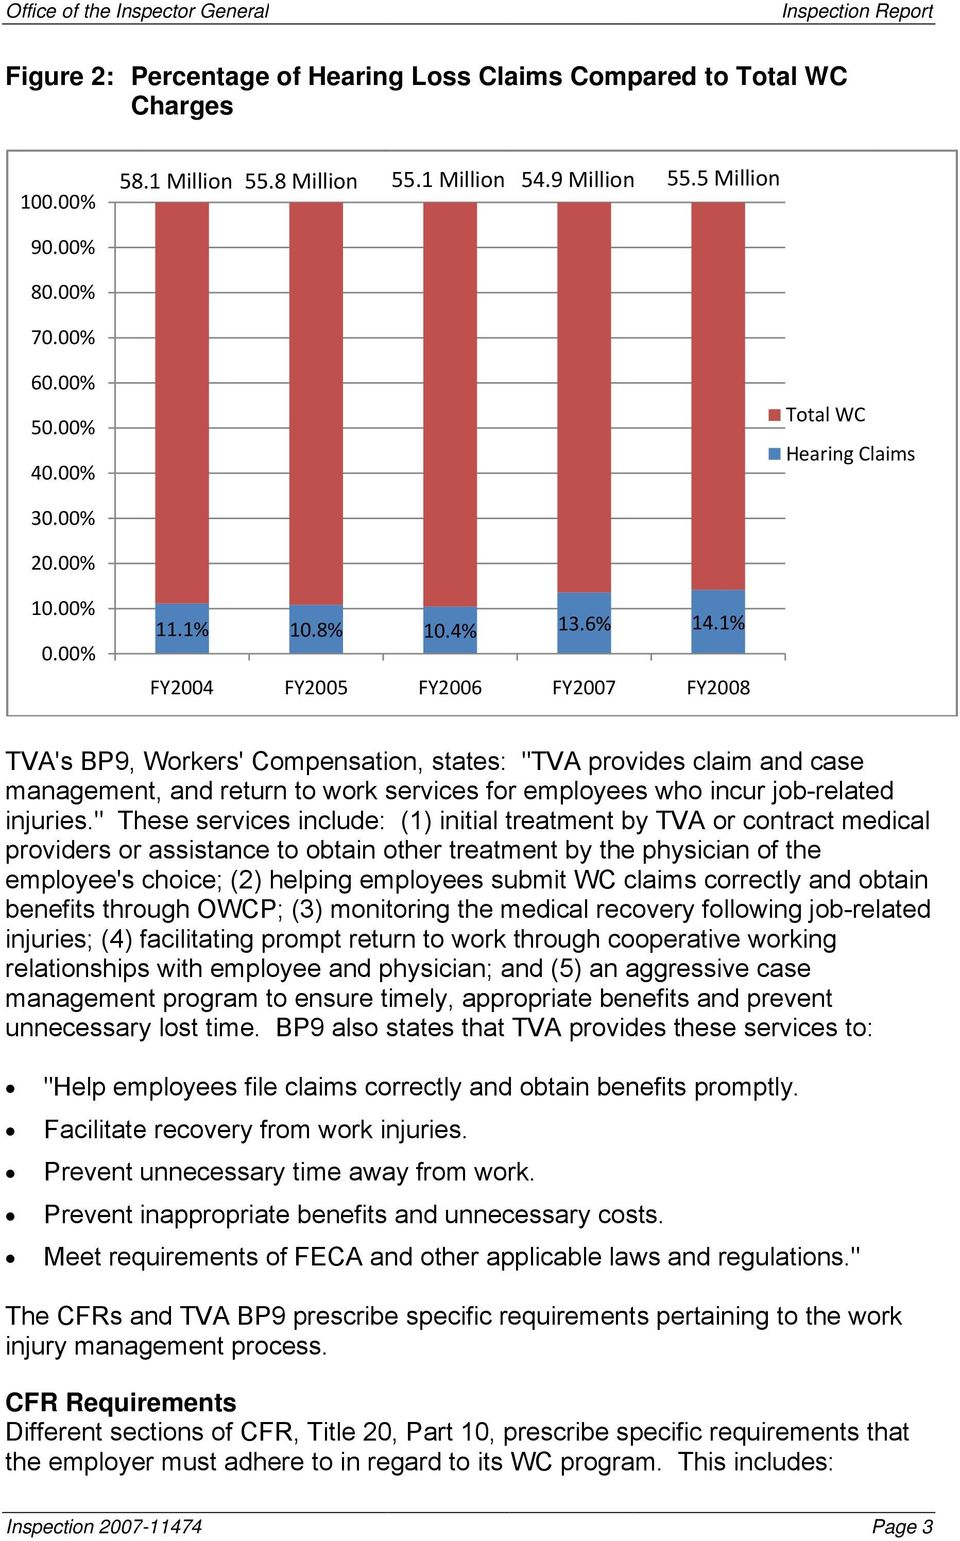 "1% FY2008 TVA's BP9, Workers' Compensation, states: ""TVA provides claim and case management, and return to work services for employees who incur job-related injuries."